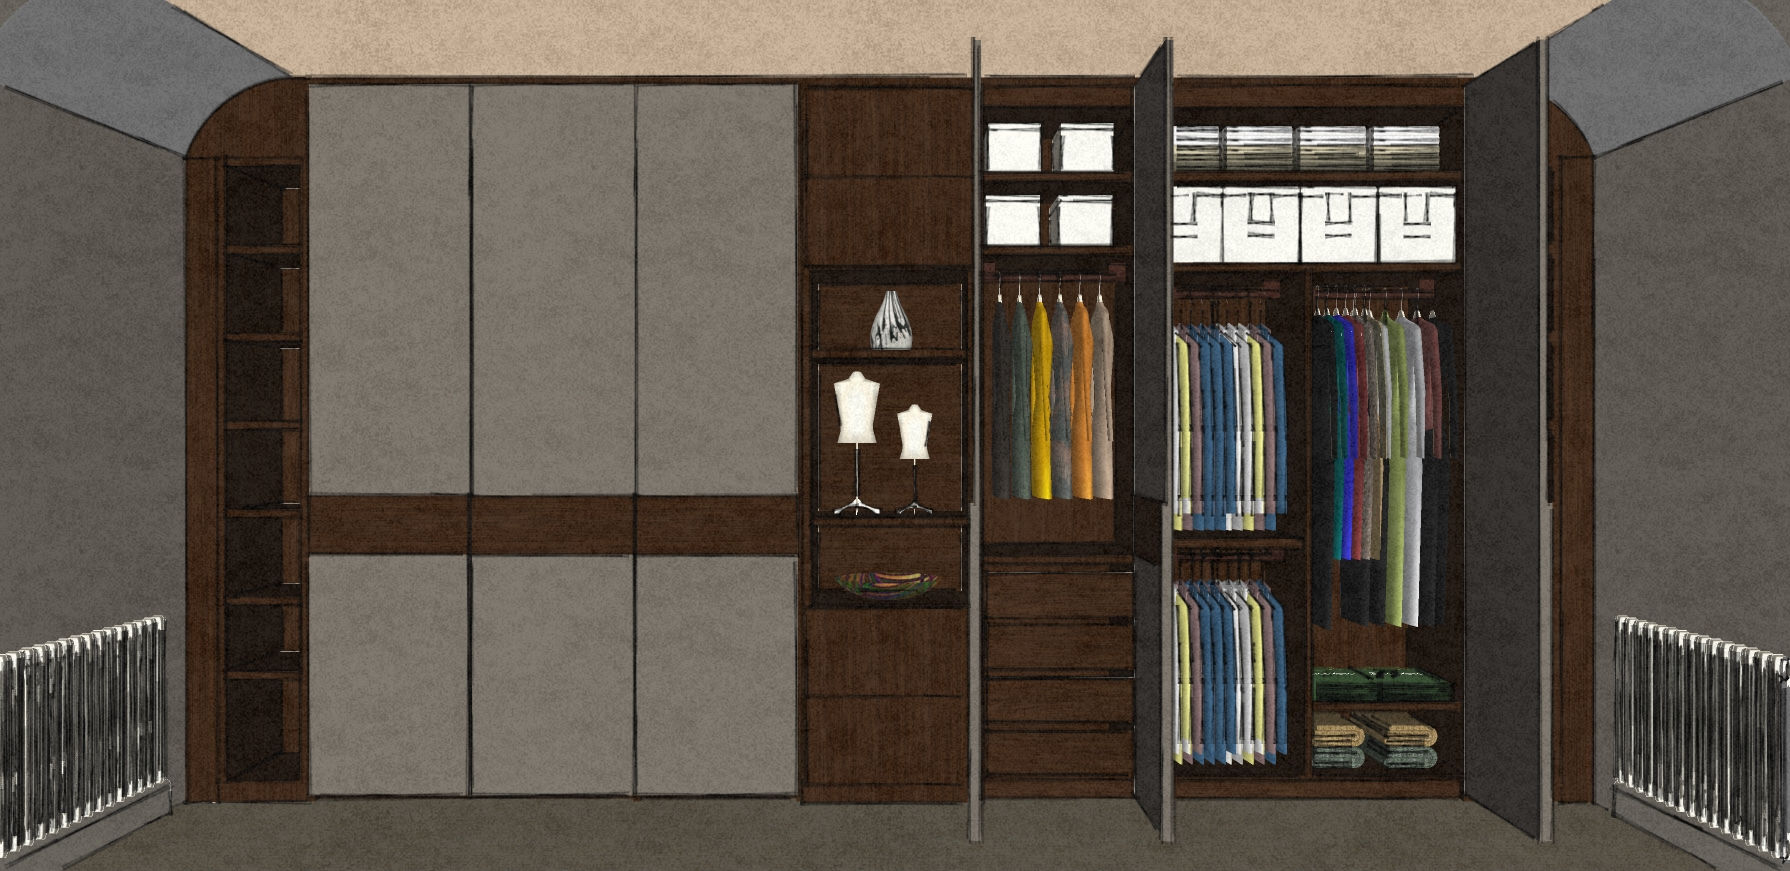 Sarah and Ed initial bedroom design a elevation h.jpg